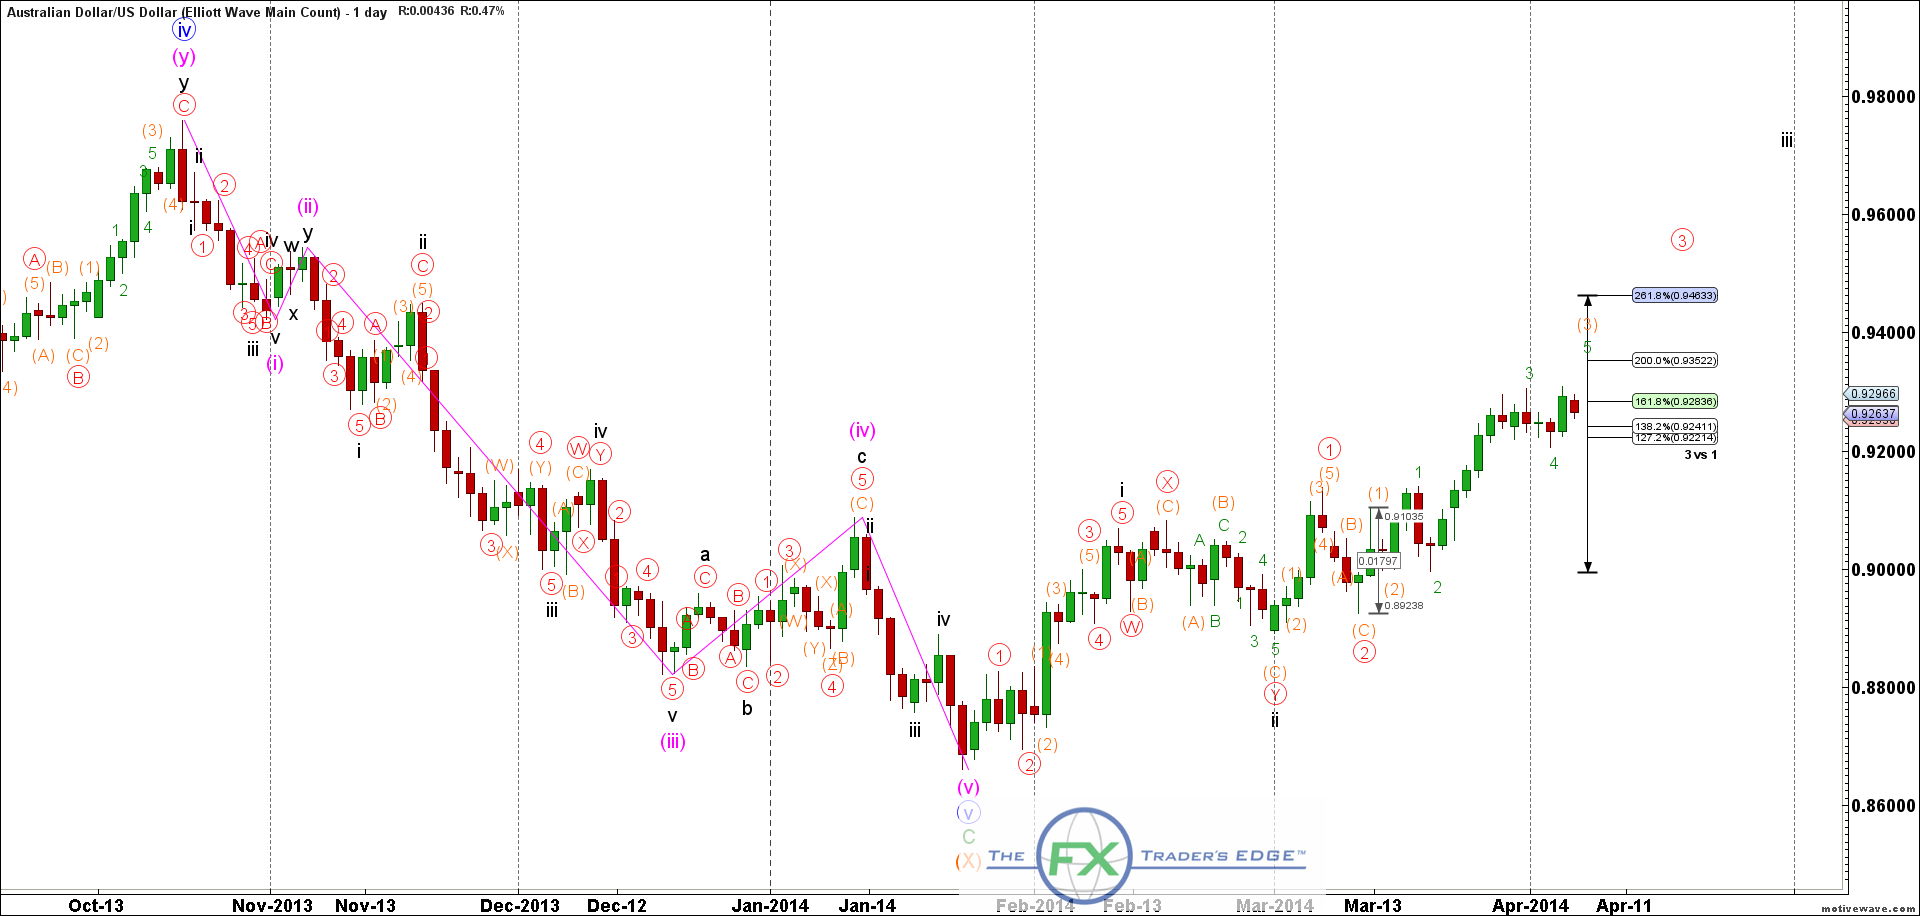 AUDUSD-Elliott-Wave-Main-Count-Apr-07-1105-AM-1-day